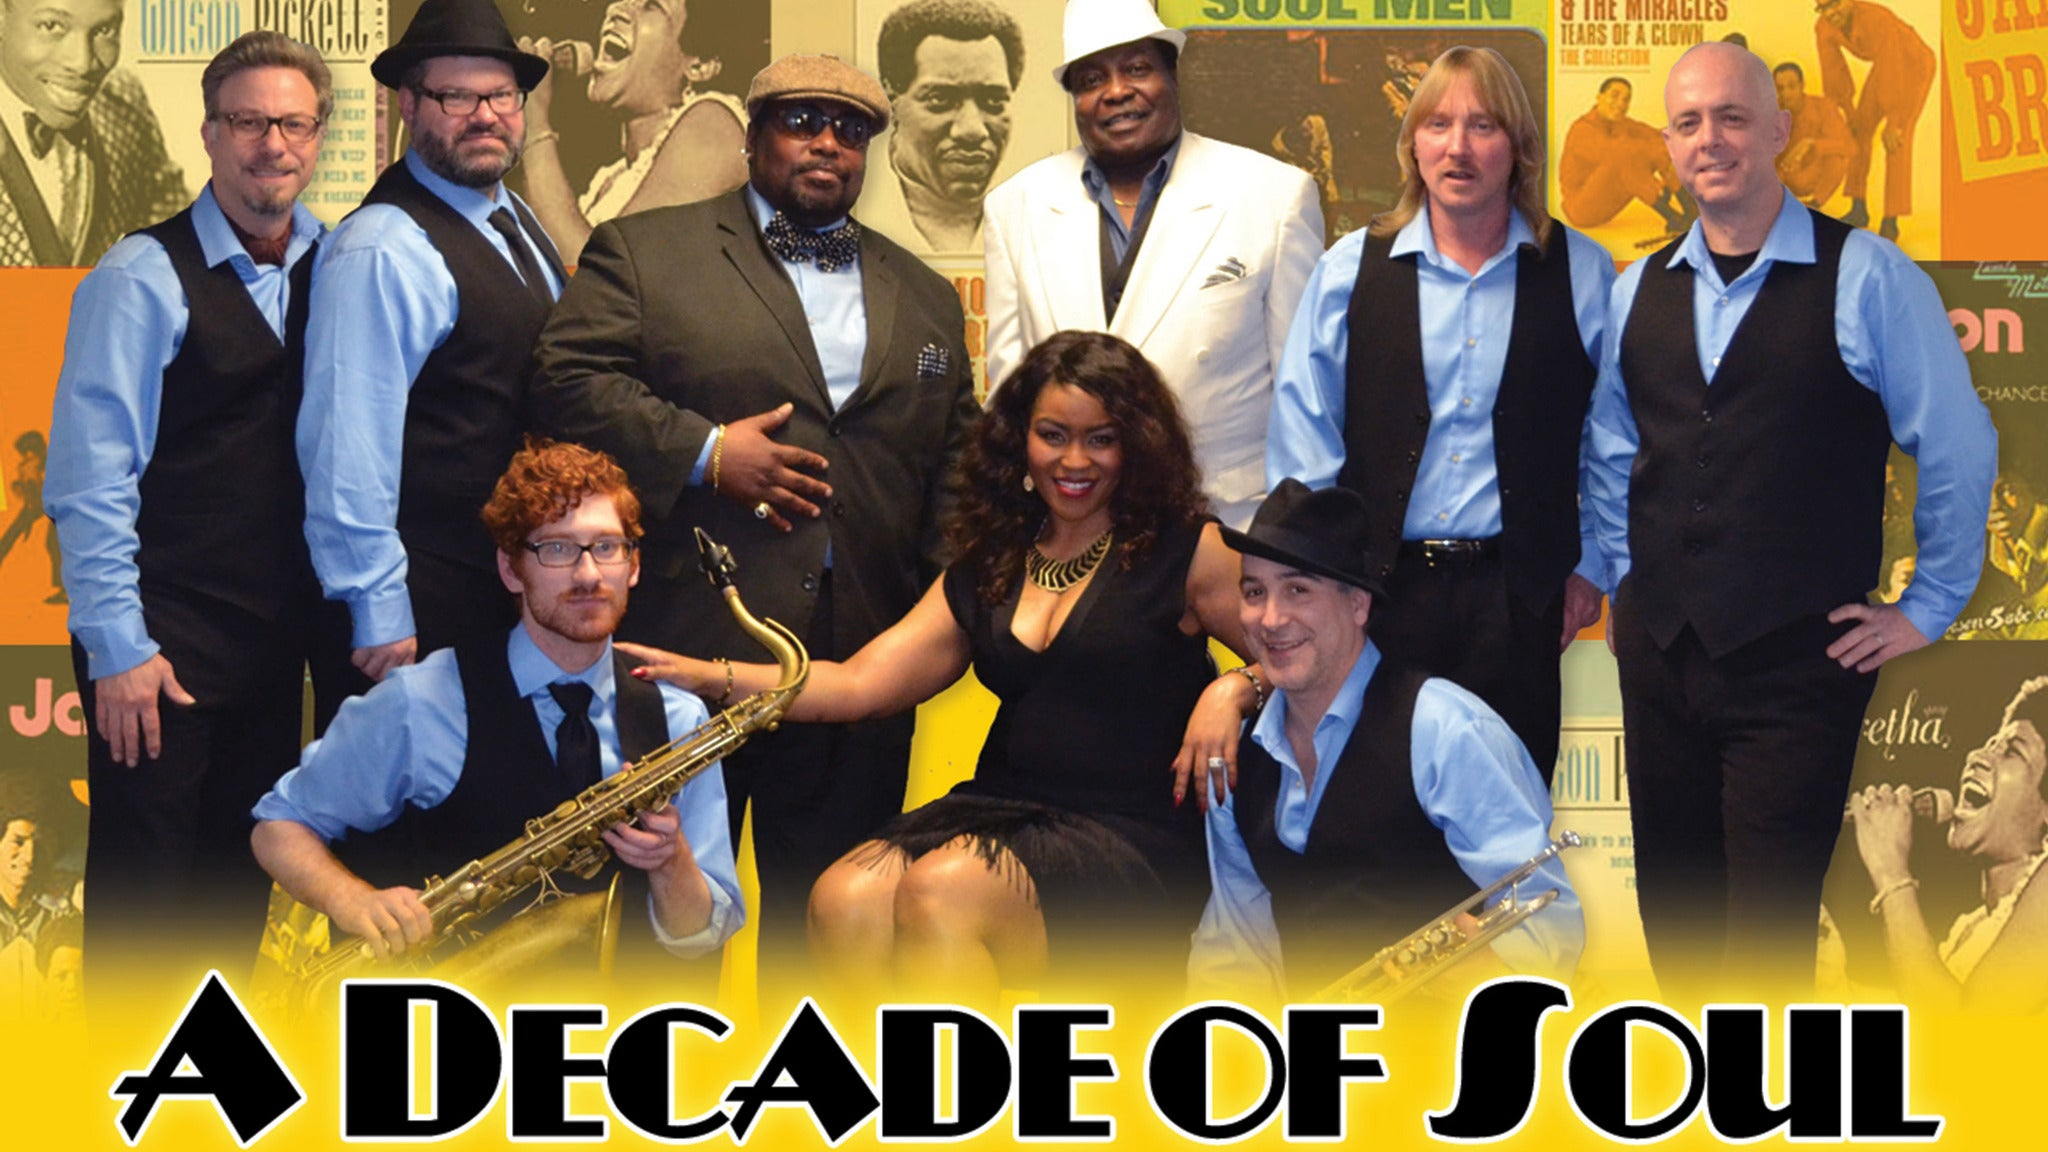 A Decade of Soul- A Classic Soul & Motown Christmas